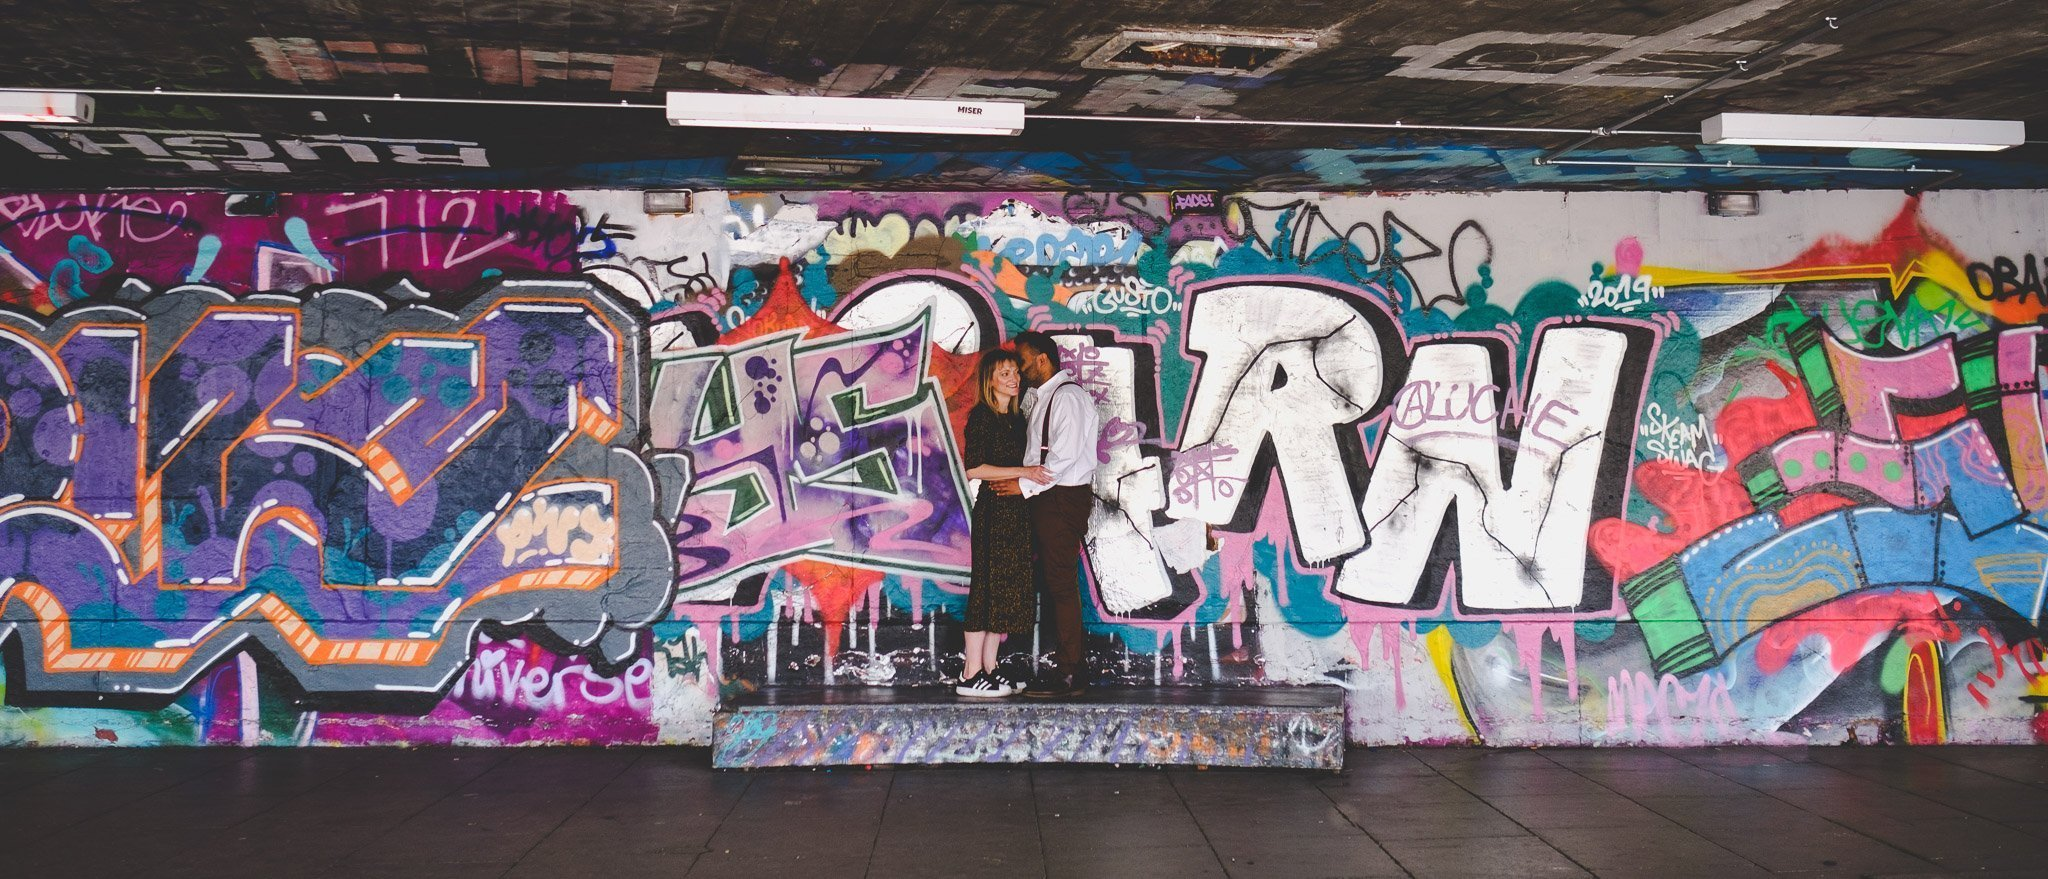 Couple hugging in front of graffiti at the Southbank Centre London engagement shoot. Photography by thatthingyoupluck.